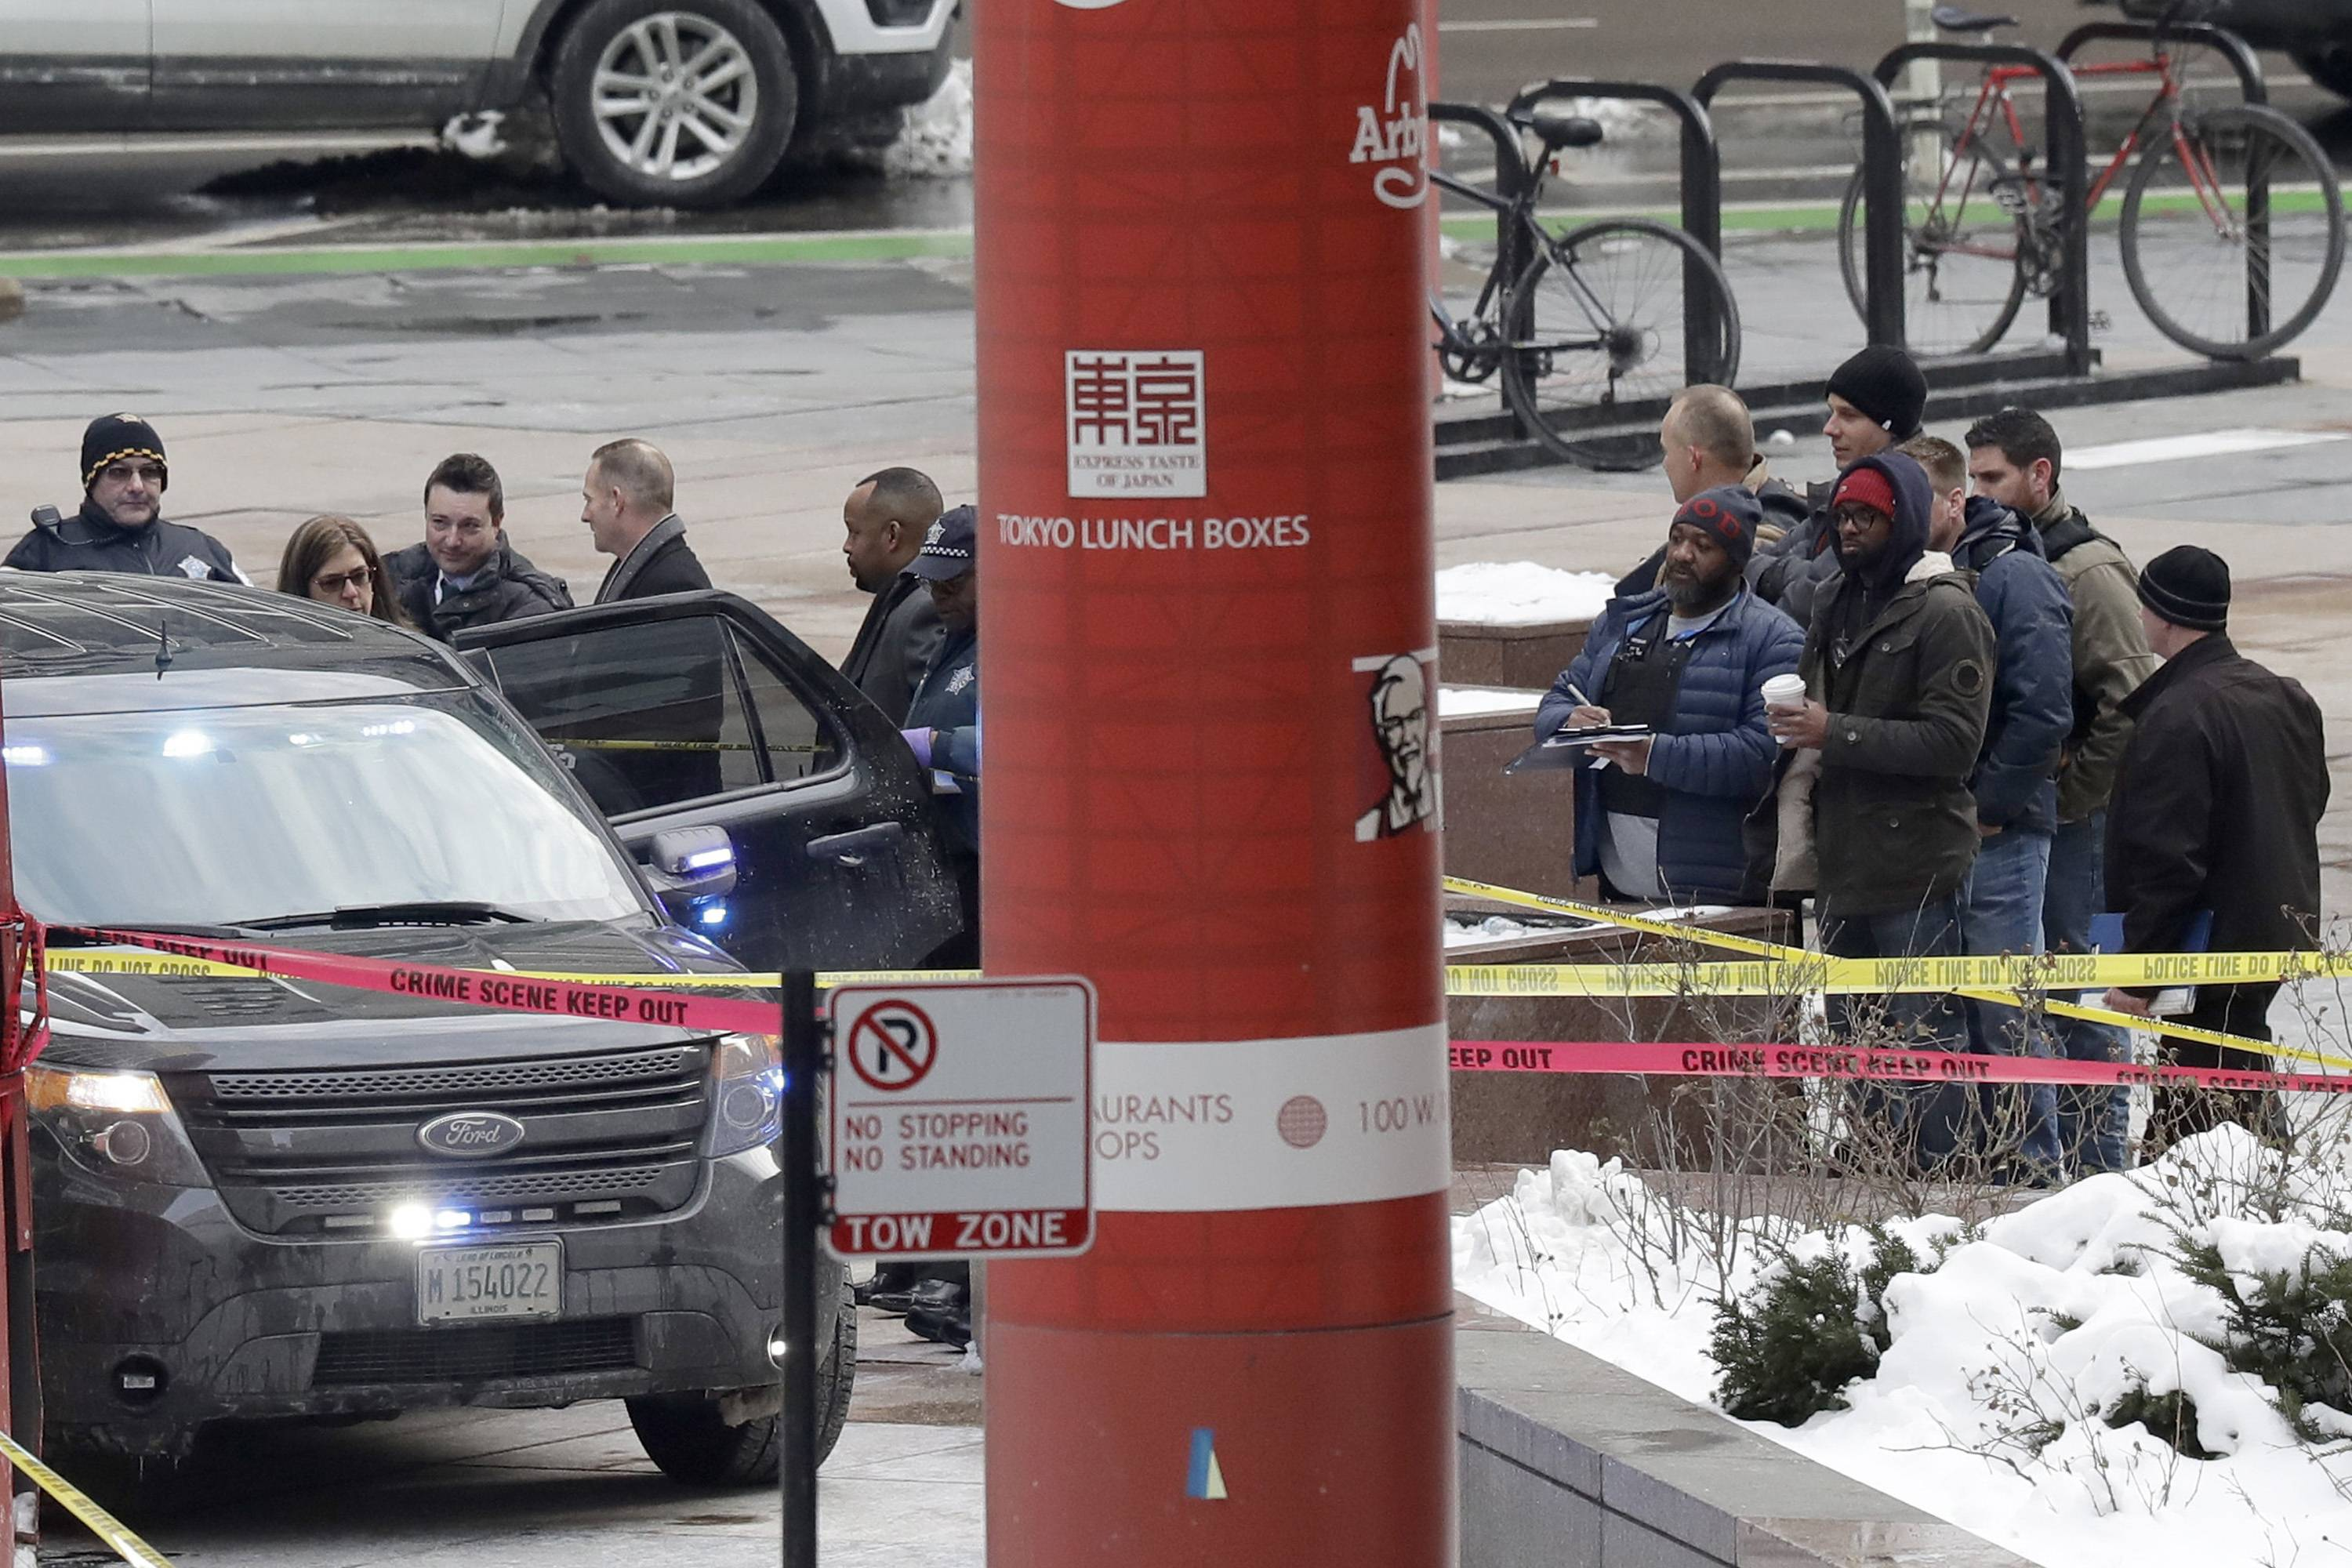 Chicago police officers remain on the scene outside the James R. Thompson Center after off-duty police Cmdr. Paul Bauer was shot several times as he went to assist tactical officers pursuing a fleeing suspect near the center on Tuesday in Chicago.